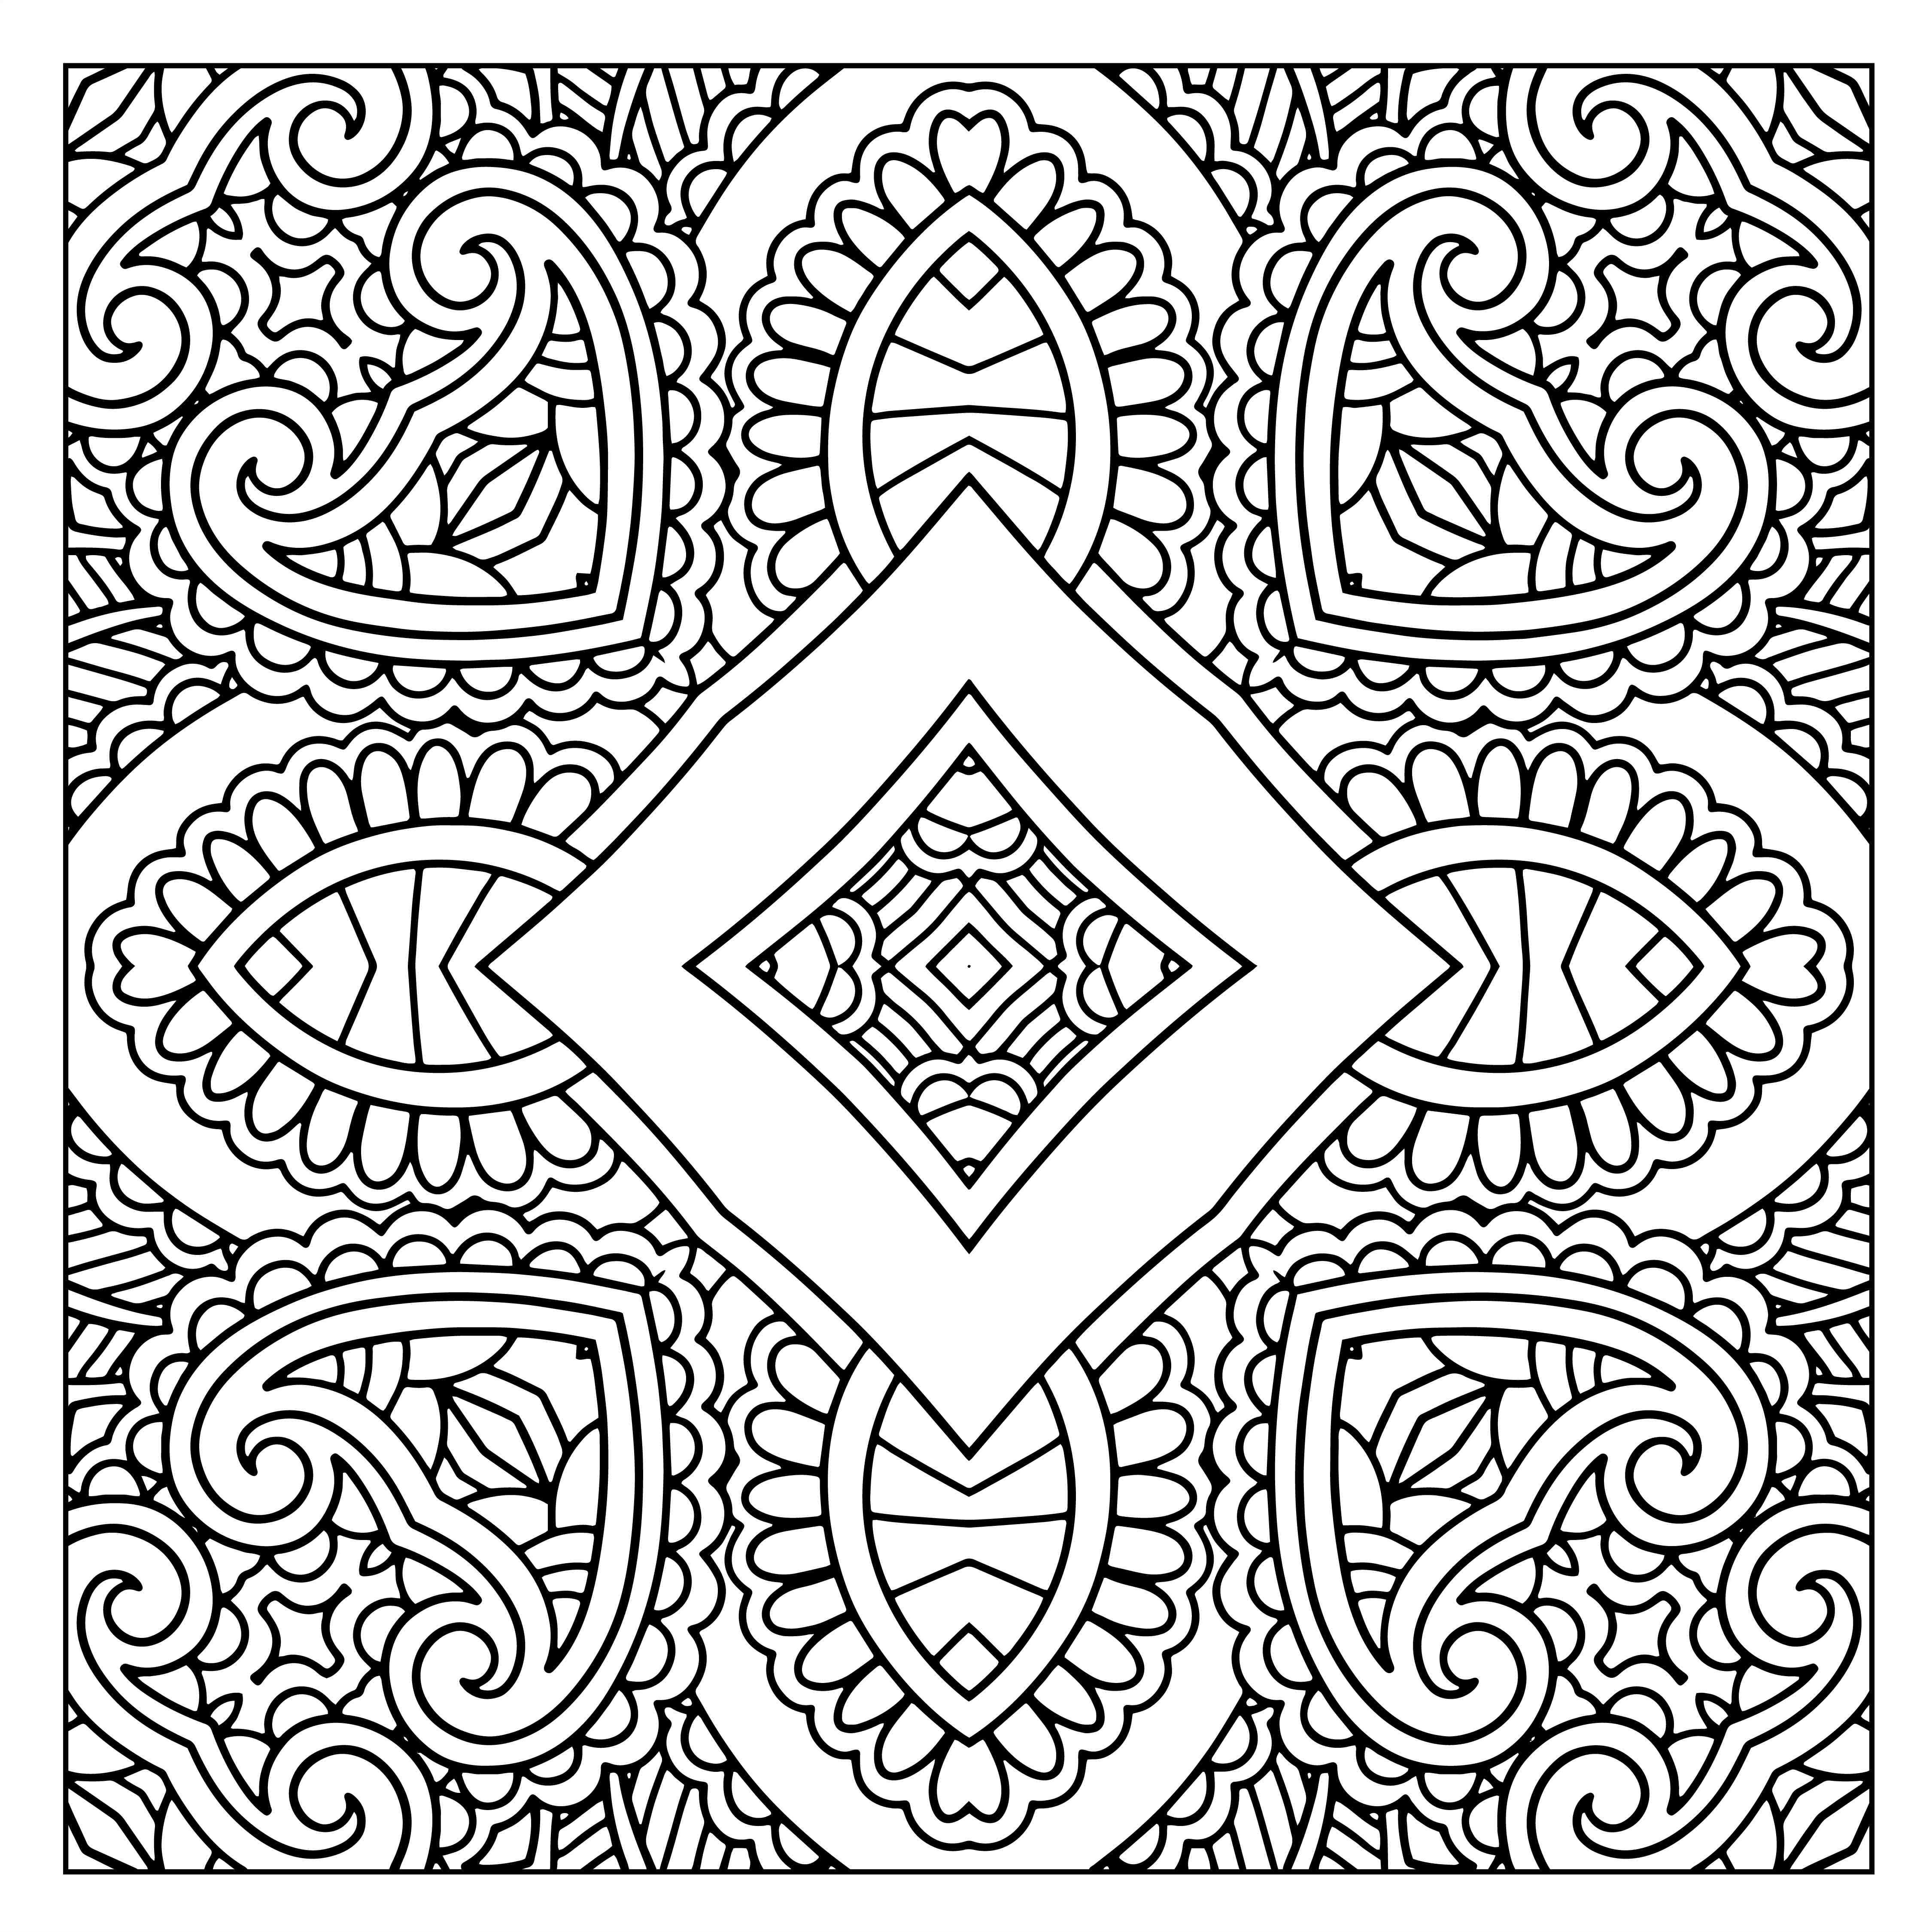 designs to color free 50 free square patterns kaleidoscope adult coloring color free designs to